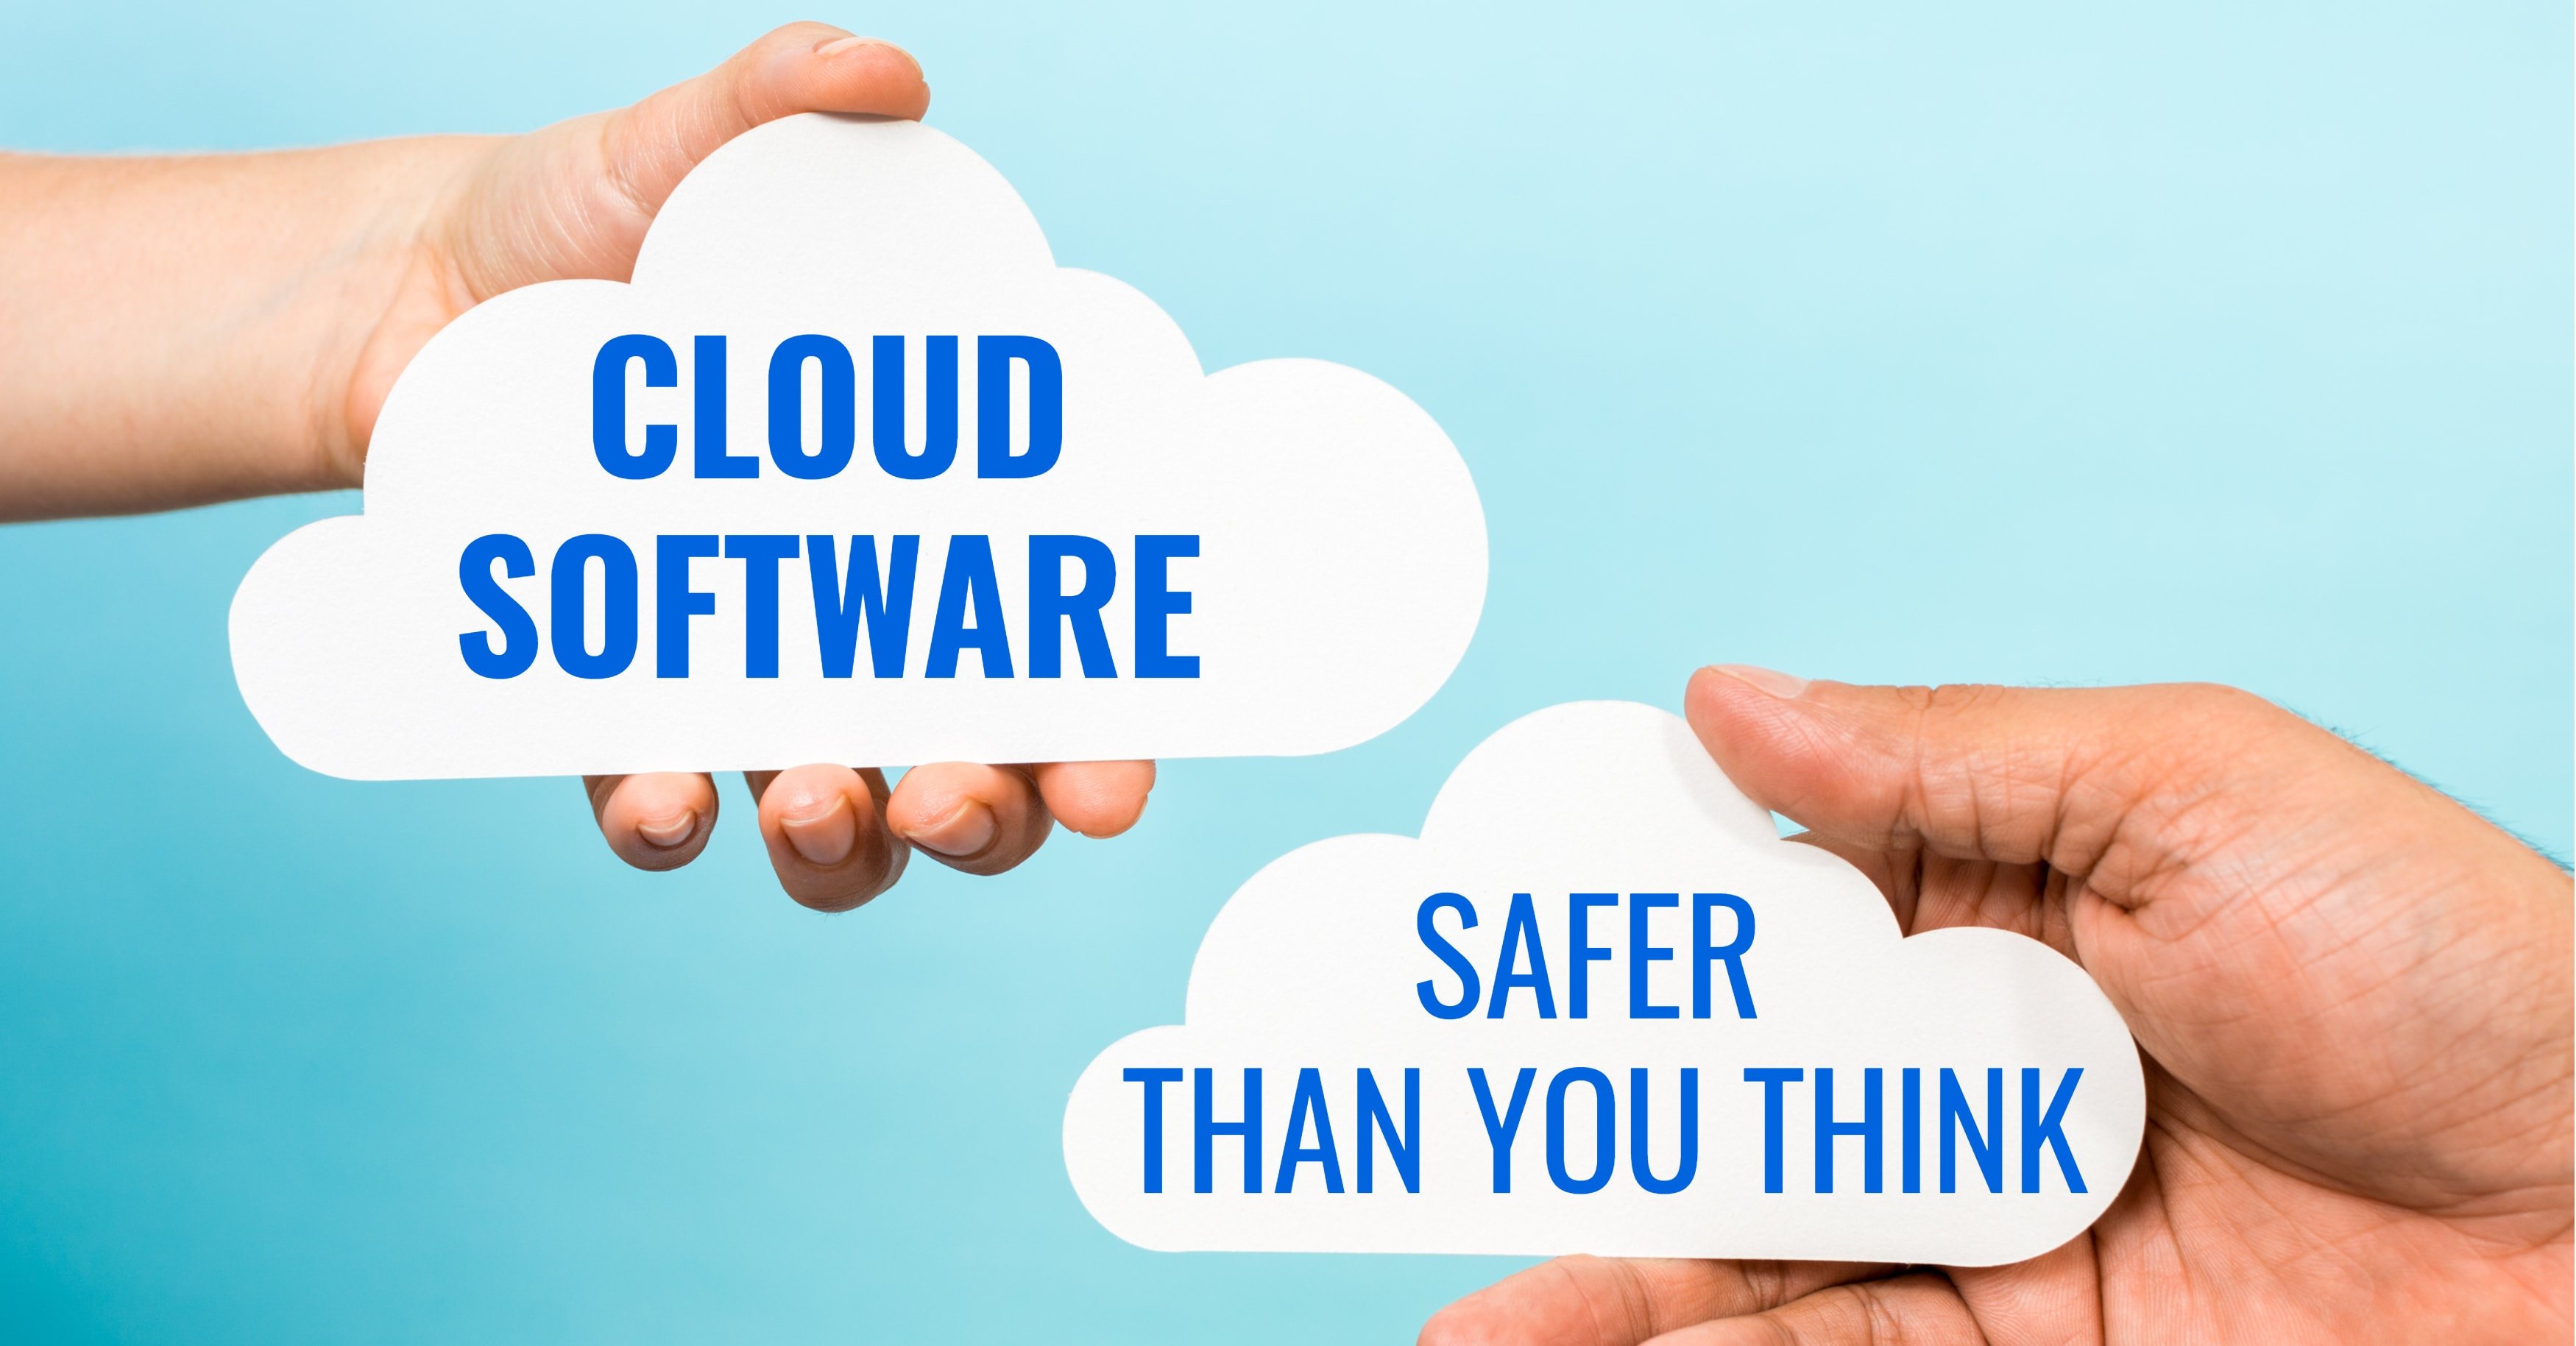 Cloud Software Safety